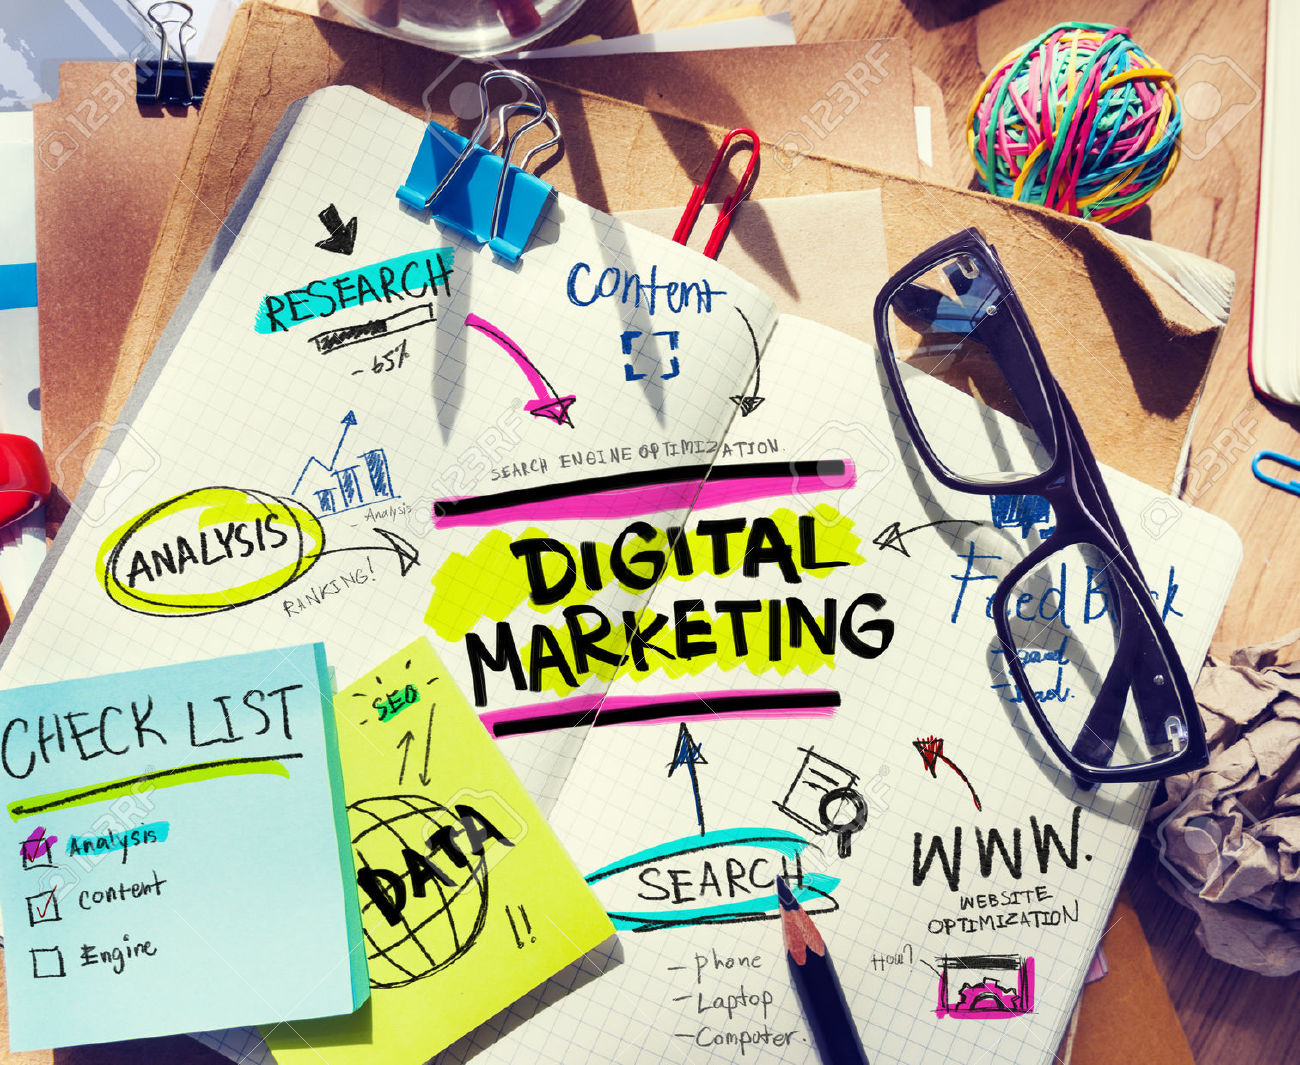 Digital Marketing Checklist For Small Businesses